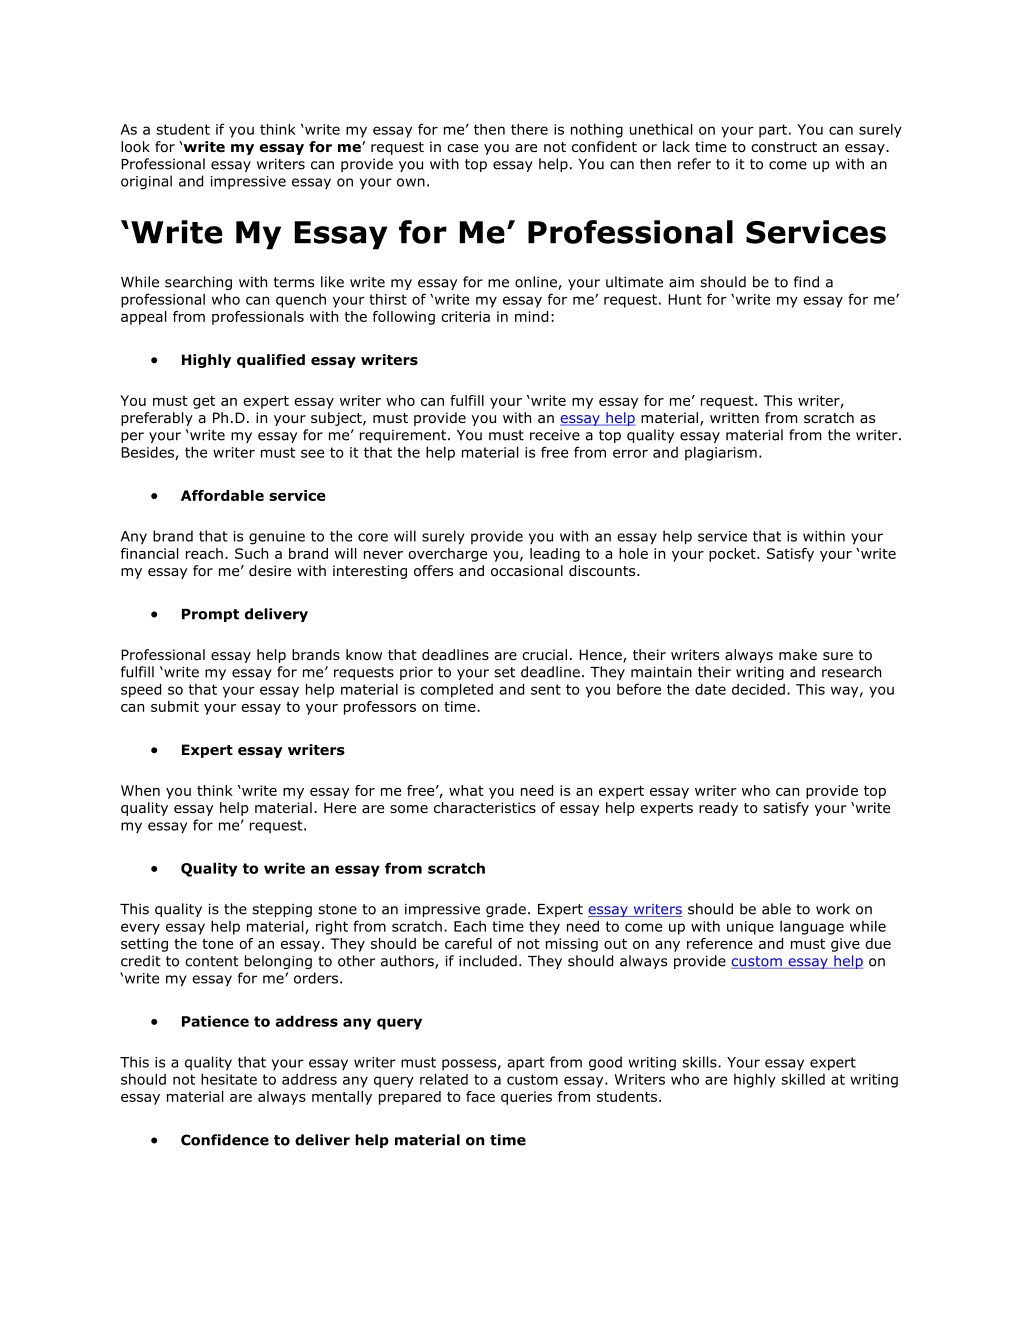 017 Write My Essay For Me Example As Student If You Think Surprising Free Online Cheap App Full